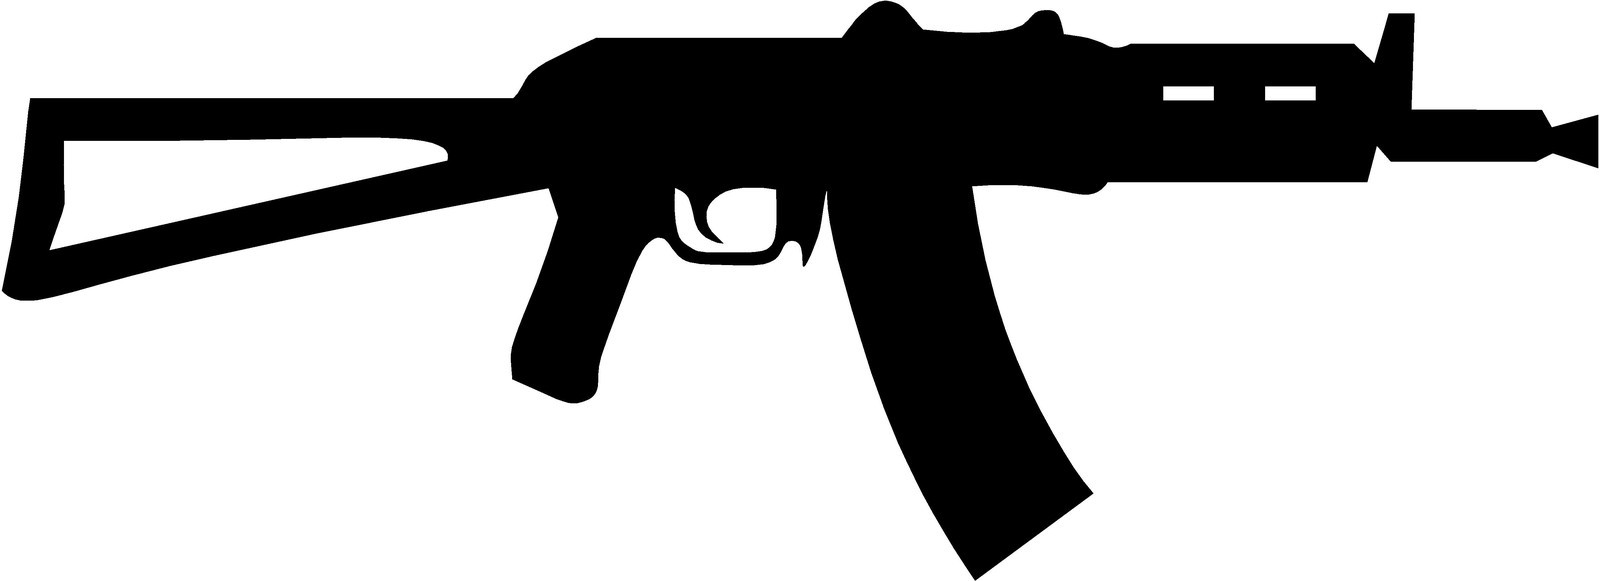 Ak 47 image clipart picture black and white download Rotate & Resize Tool: guns clipart ak47 picture black and white download